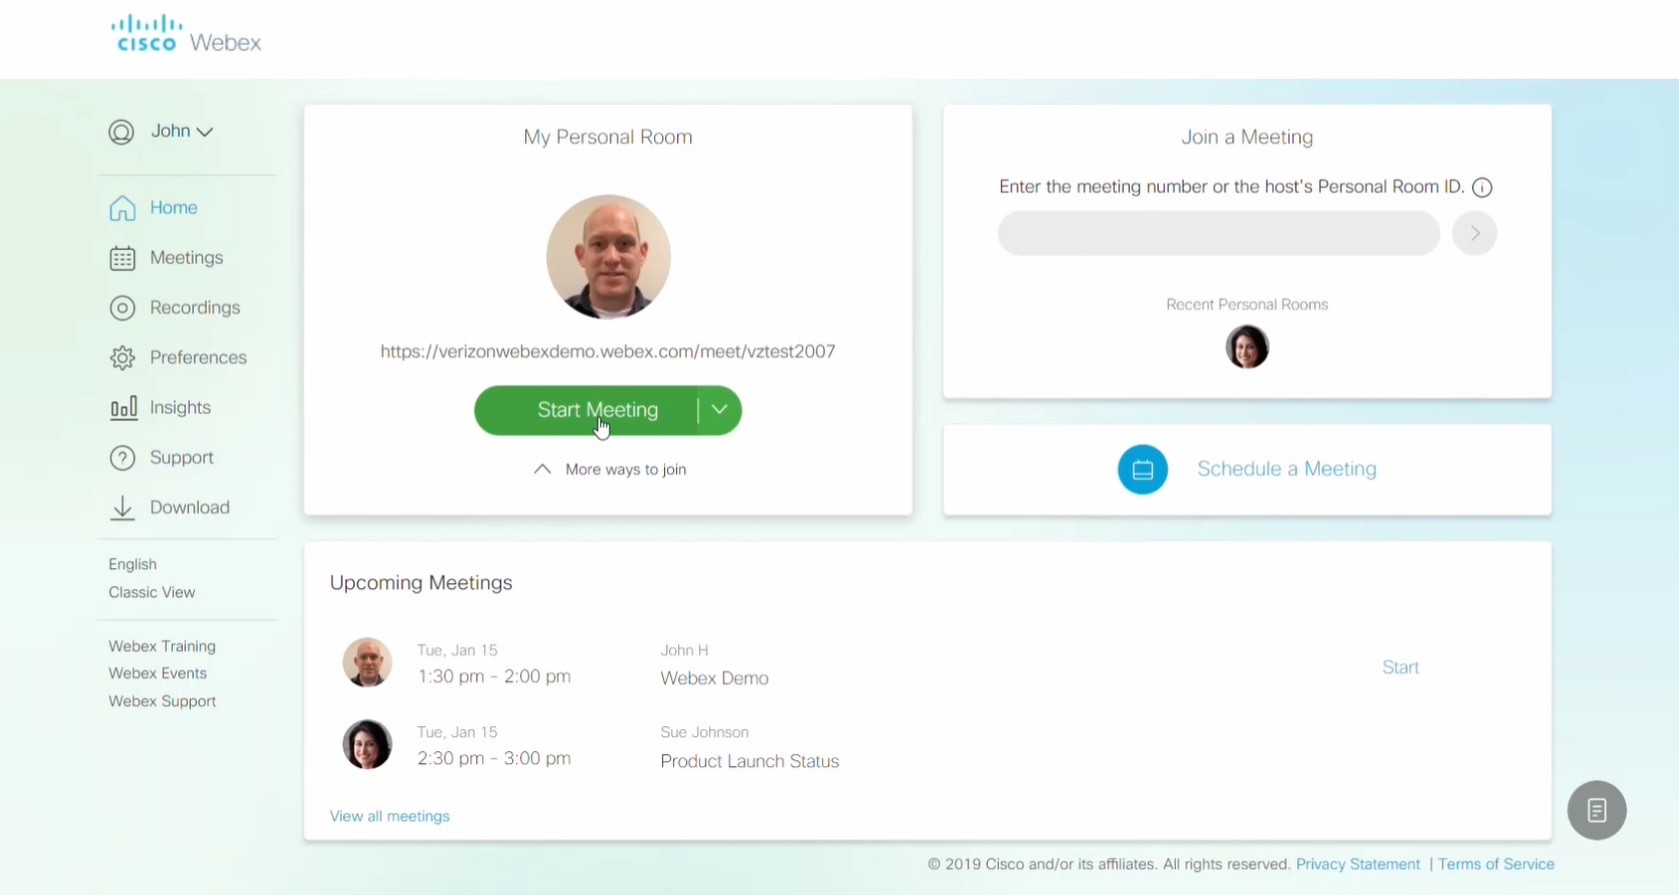 Cisco Webex dashboard